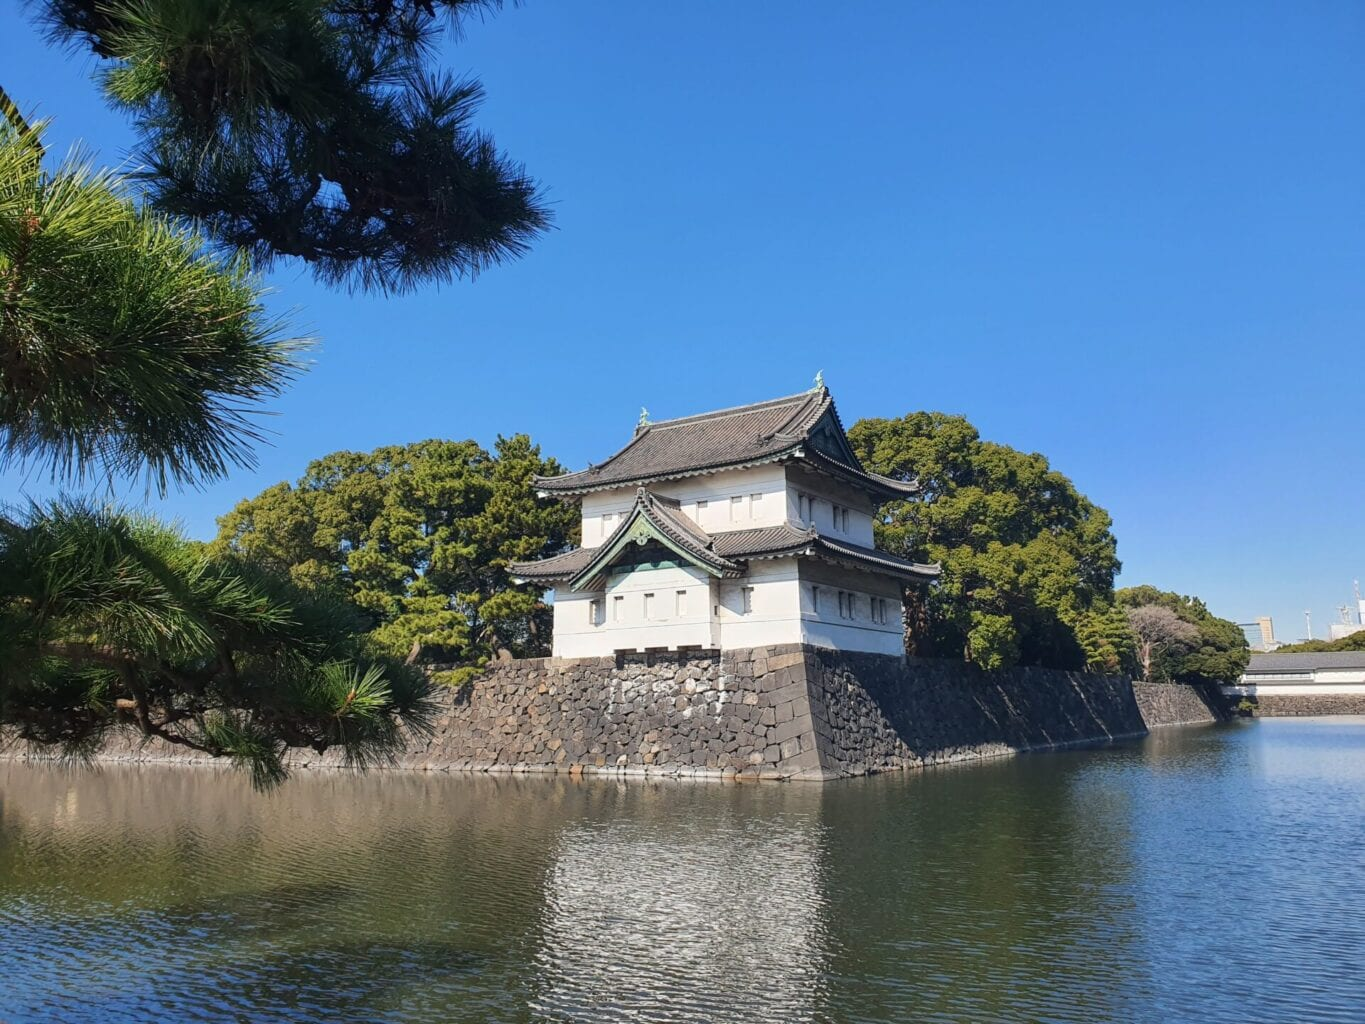 The Imperial Palace near Ginza, Tokyo